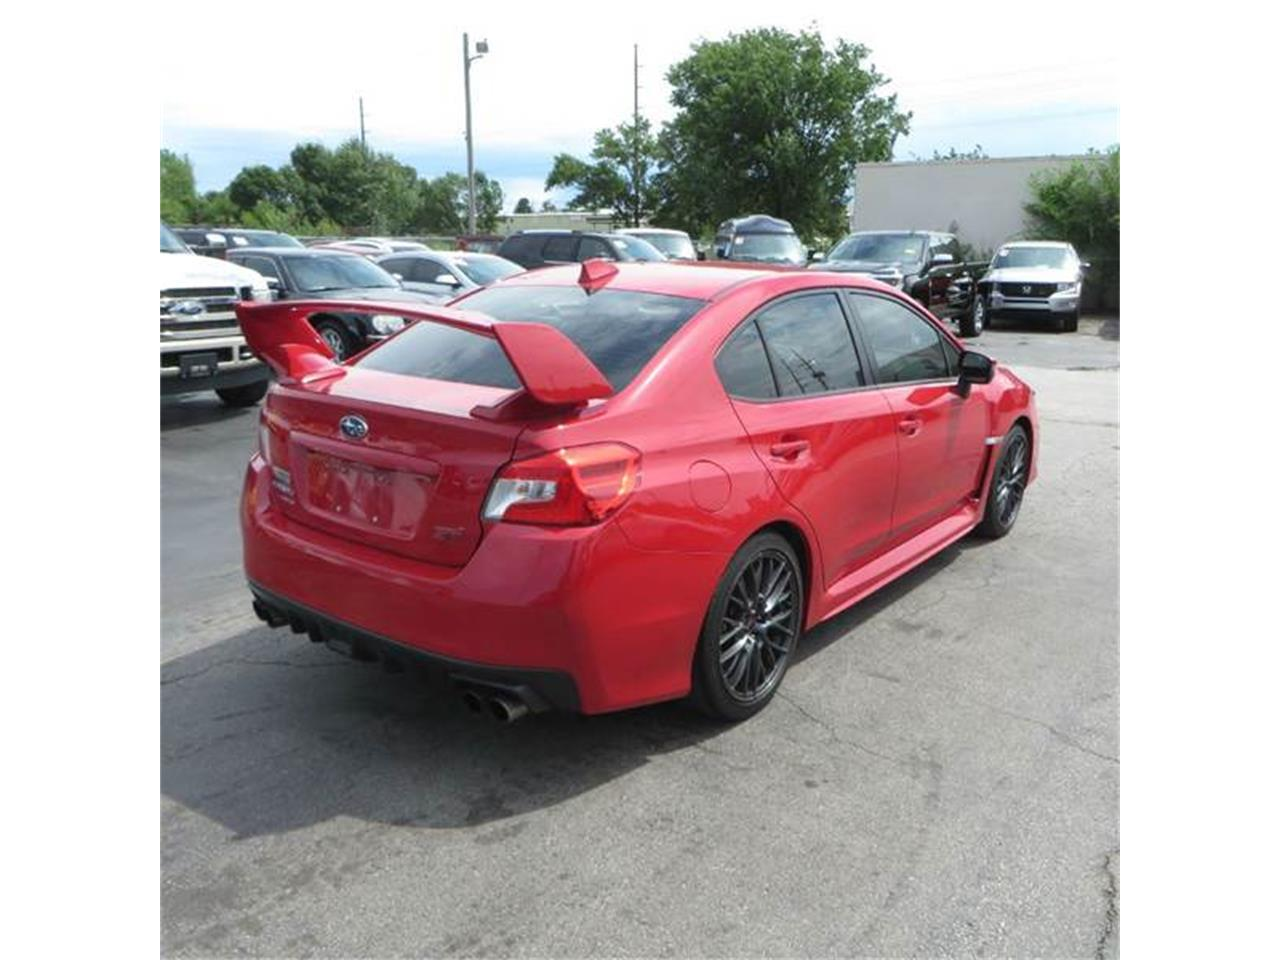 Large Picture of '15 WRX - $29,980.00 - J2RC